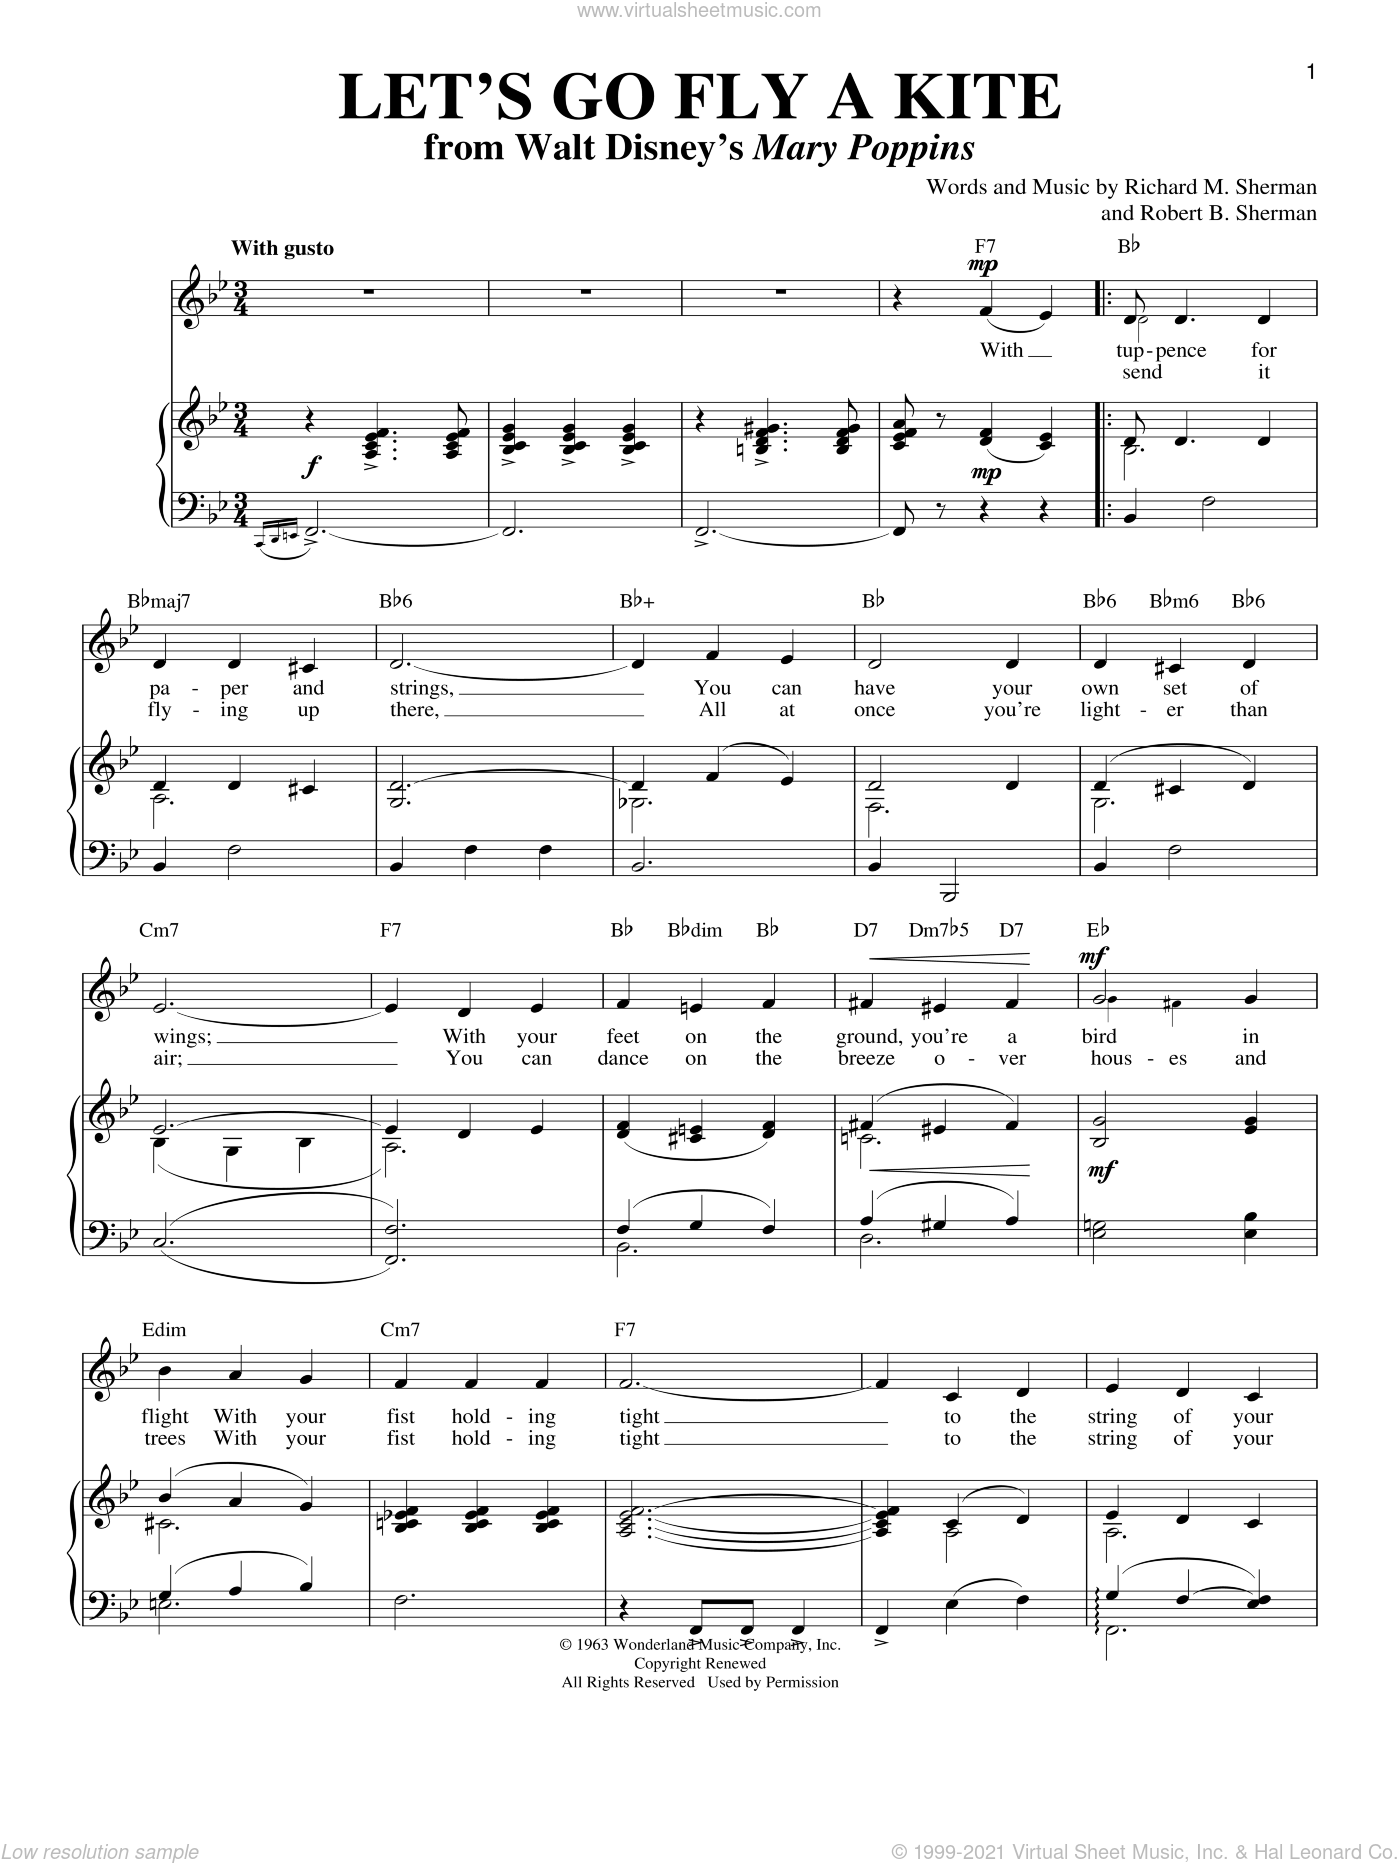 Let's Go Fly A Kite sheet music for voice and piano by Robert B. Sherman, Sherman Brothers and Richard M. Sherman. Score Image Preview.